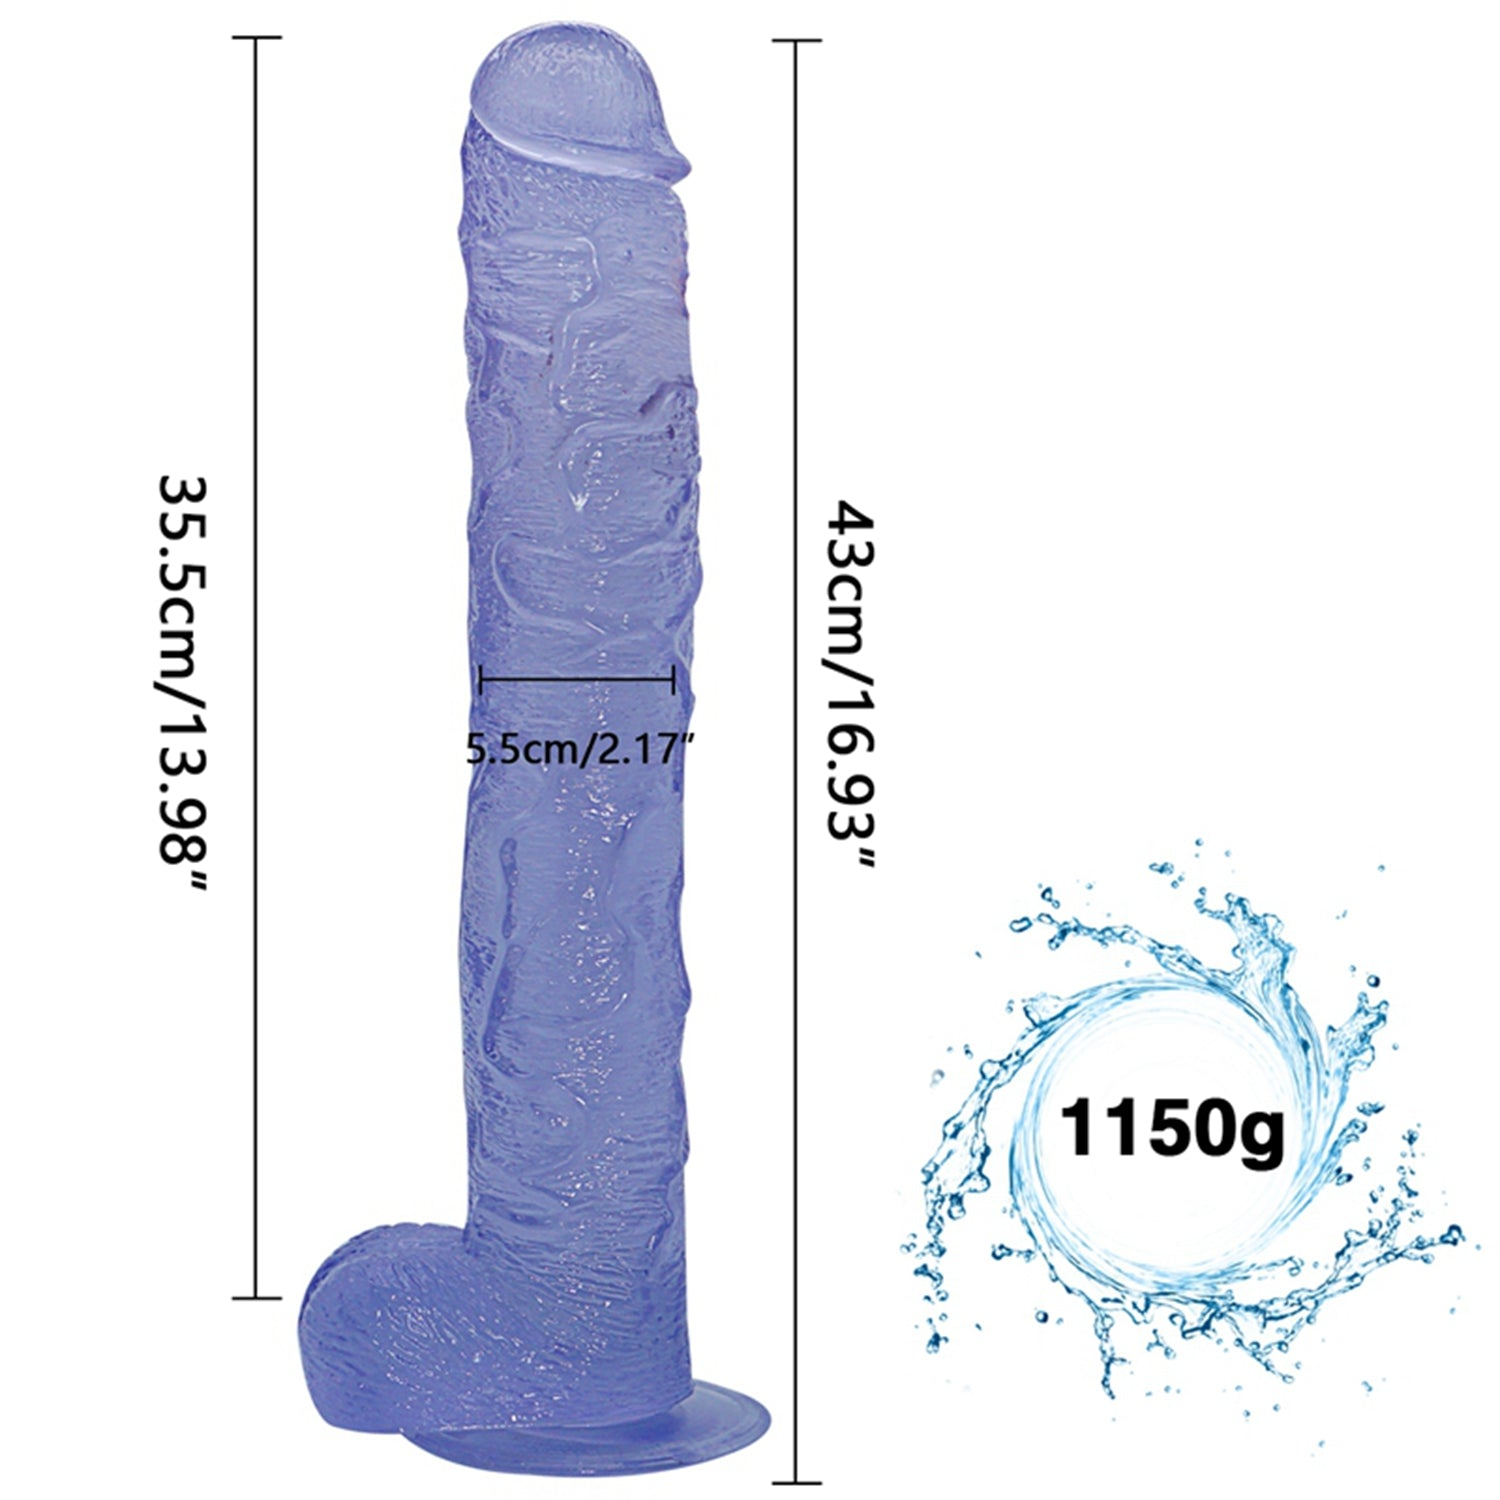 MD Legend 45cm Realistic Dildo Dong Large Penis Cock with Suction Cup